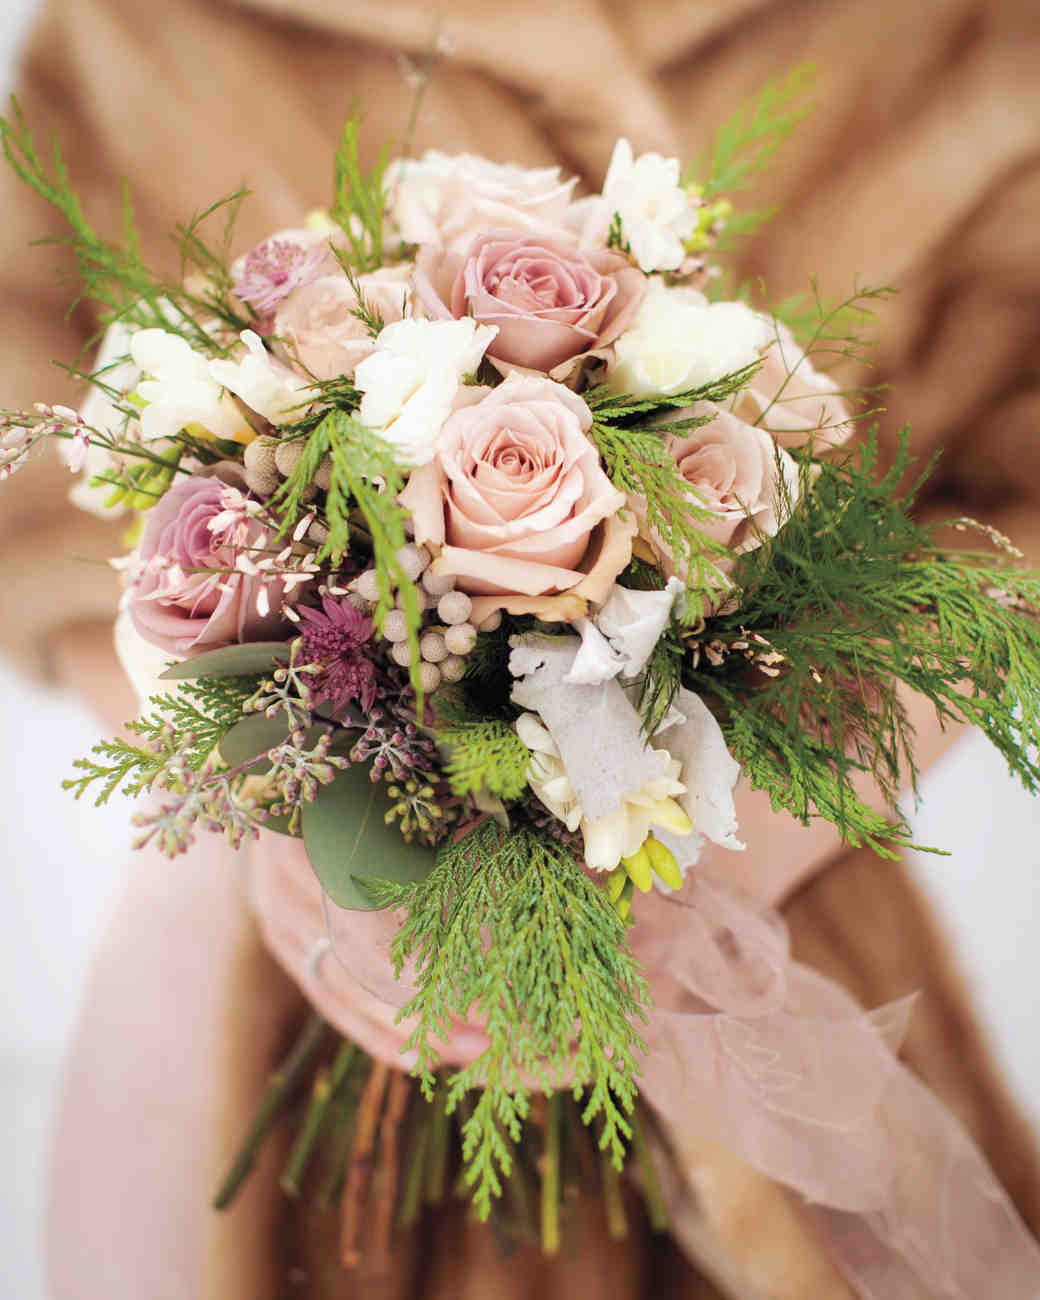 Wedding Flowers: Pretty In Pink Wedding Bouquet Ideas